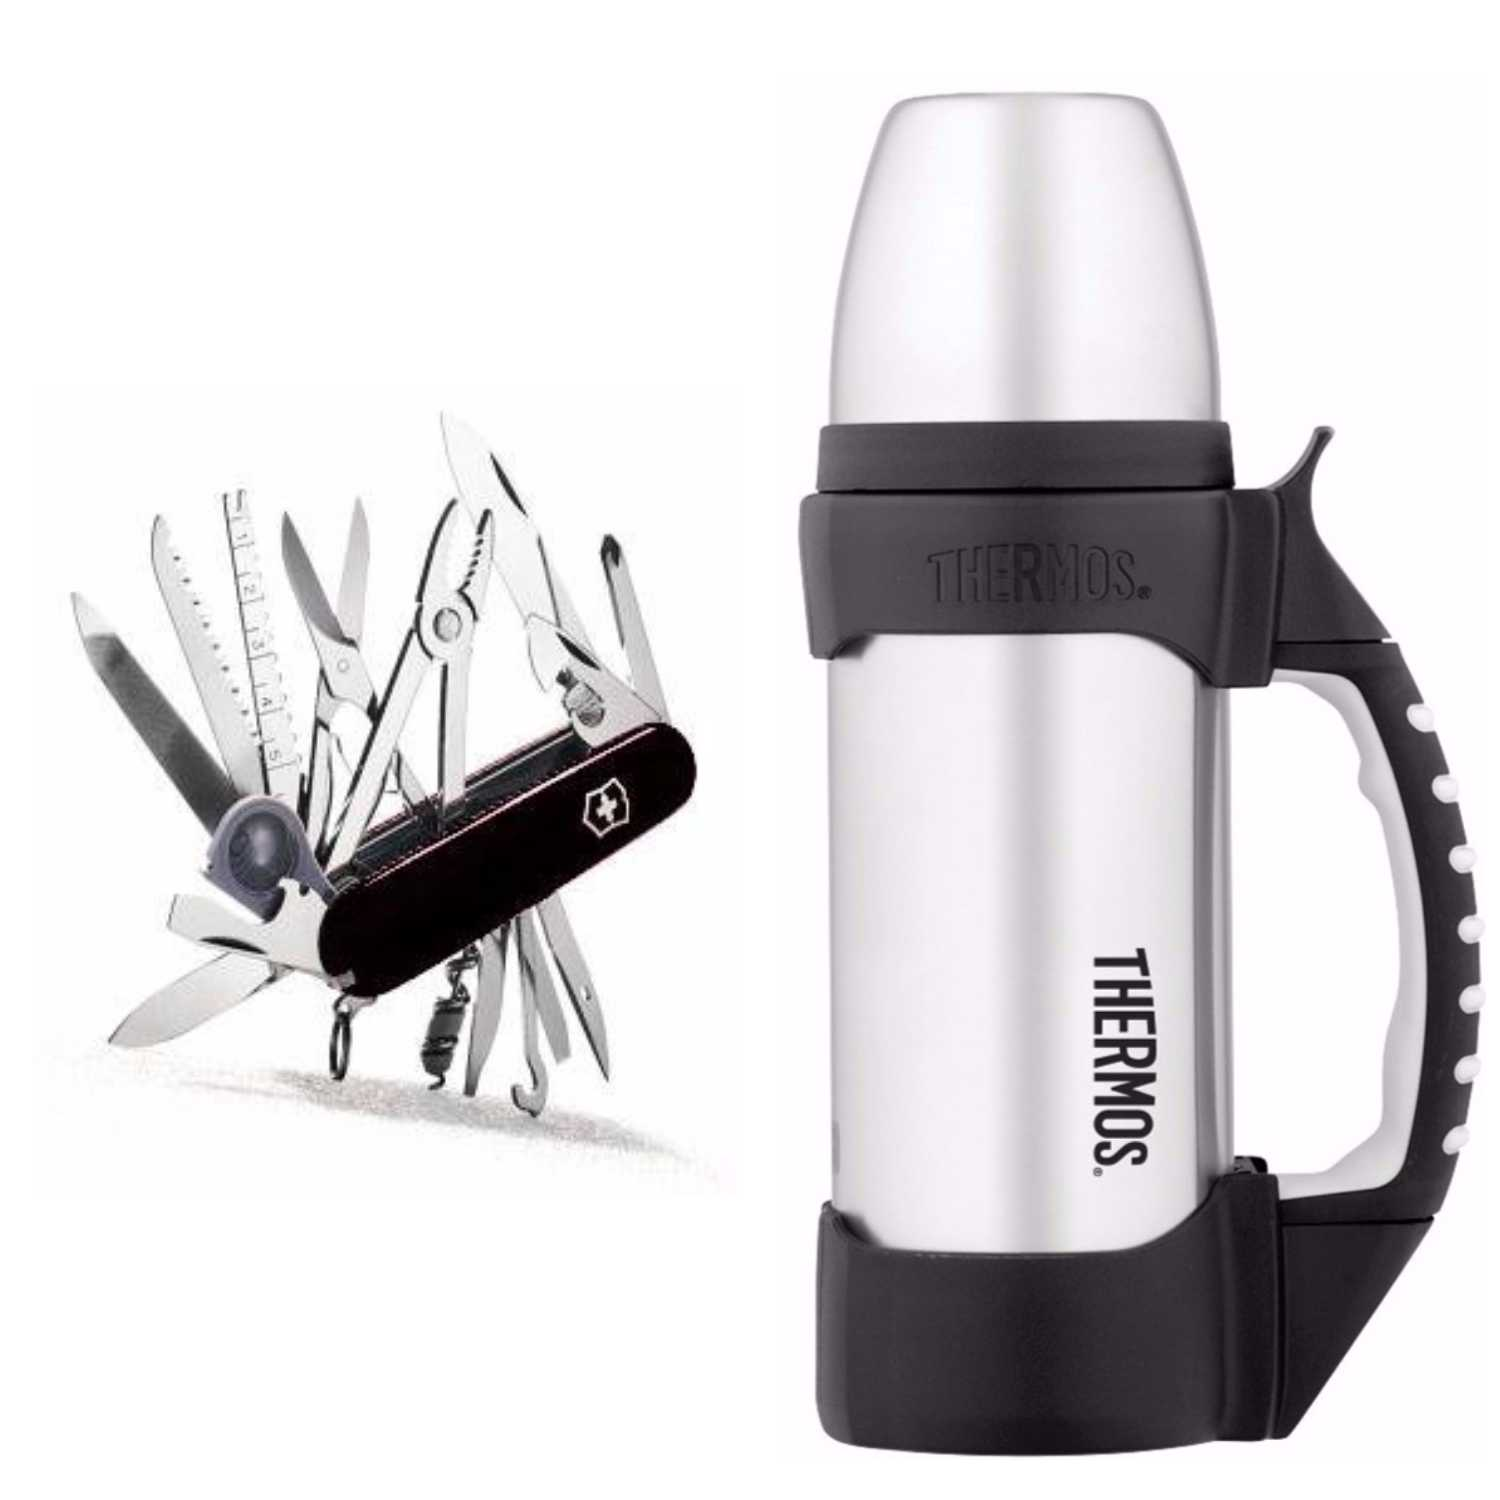 Victorinox Swiss Champ Black Swiss Army Knife with 1.1qt Thermos Beverage Bottle by Victorinox